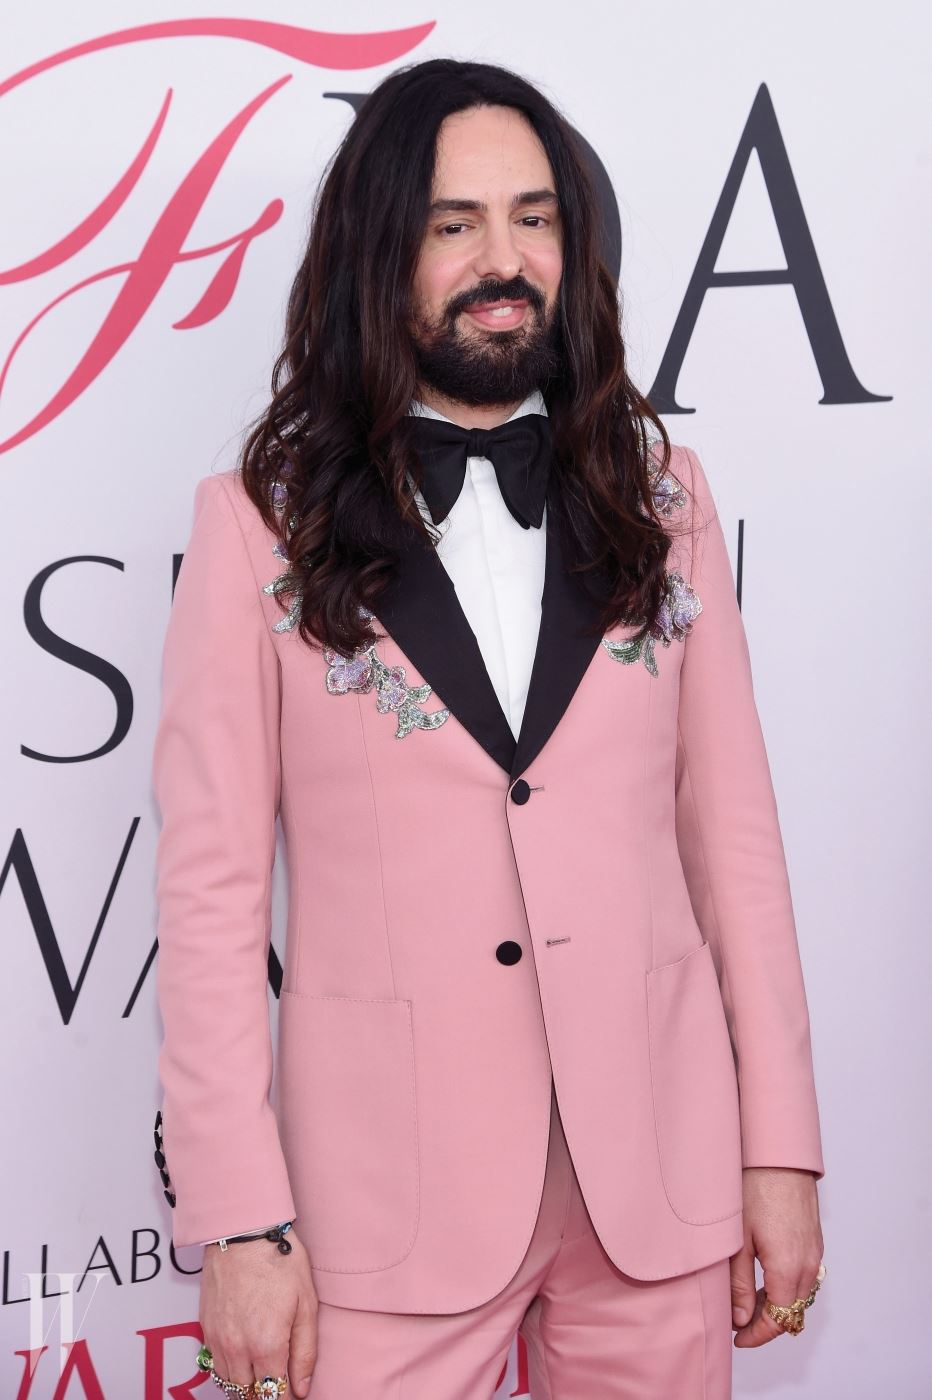 NEW YORK, NY - JUNE 06: Creative director of Gucci Alessandro Michele attends the 2016 CFDA Fashion Awards at the Hammerstein Ballroom on June 6, 2016 in New York City.  (Photo by Jamie McCarthy/Getty Images)